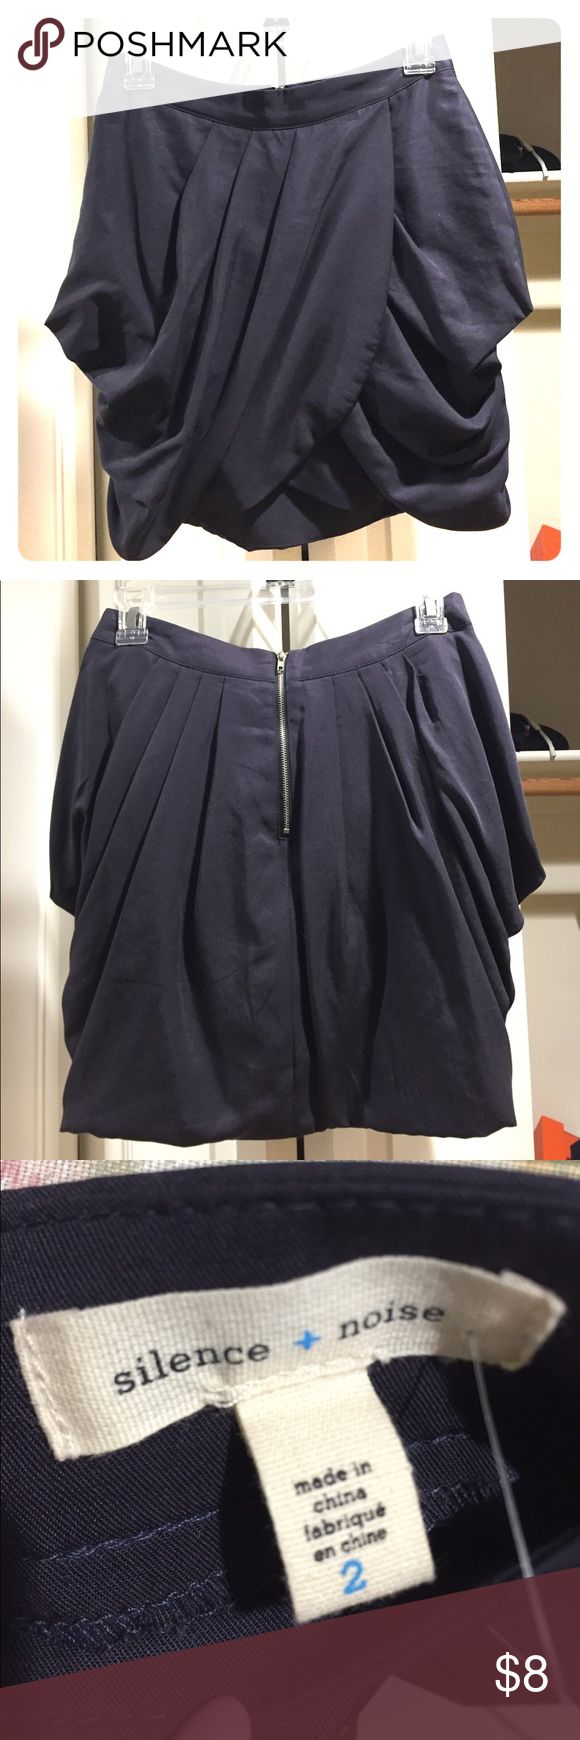 Urban Outfitters navy blue tulip skirt Size 2. NWT. Never worn. Shell: 100% tencel; lining: 100% polyester. I'm 5 feet tall, and the skirt hits about two inches from the top of my knees. Urban Outfitters Skirts